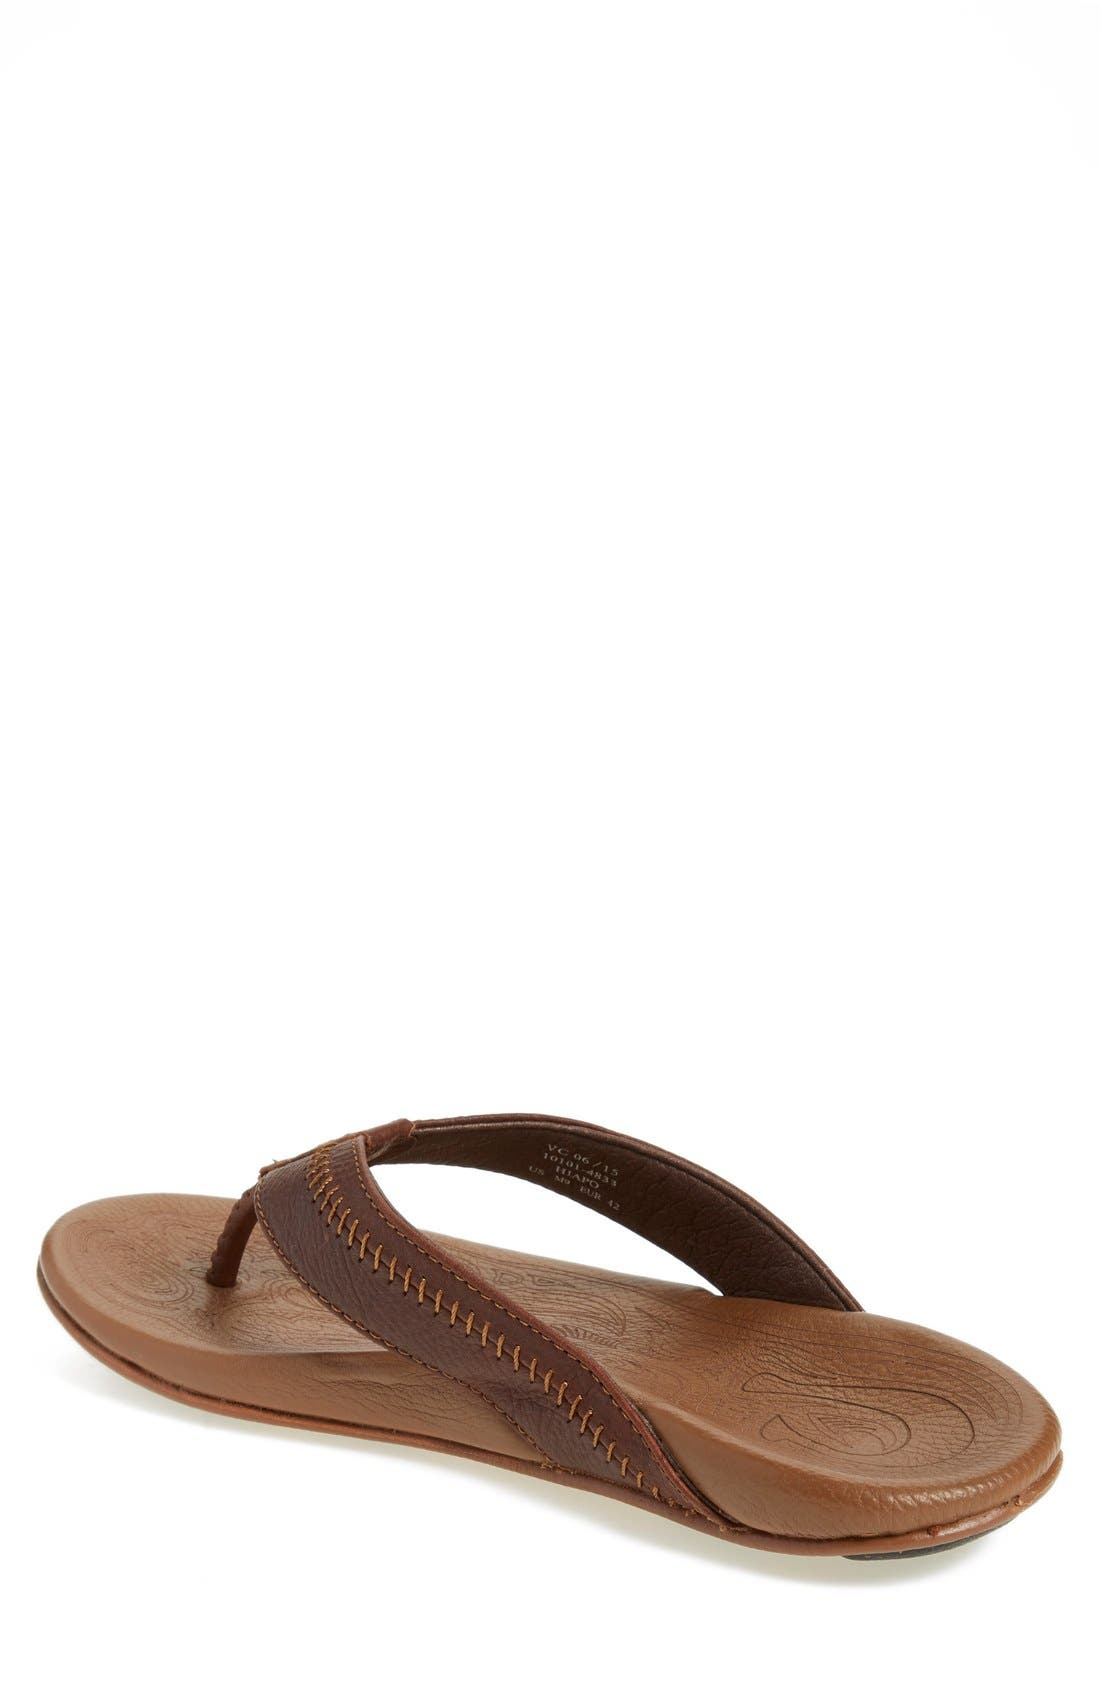 'Hiapo' Flip Flop,                             Alternate thumbnail 2, color,                             DARK JAVA TOFFEE